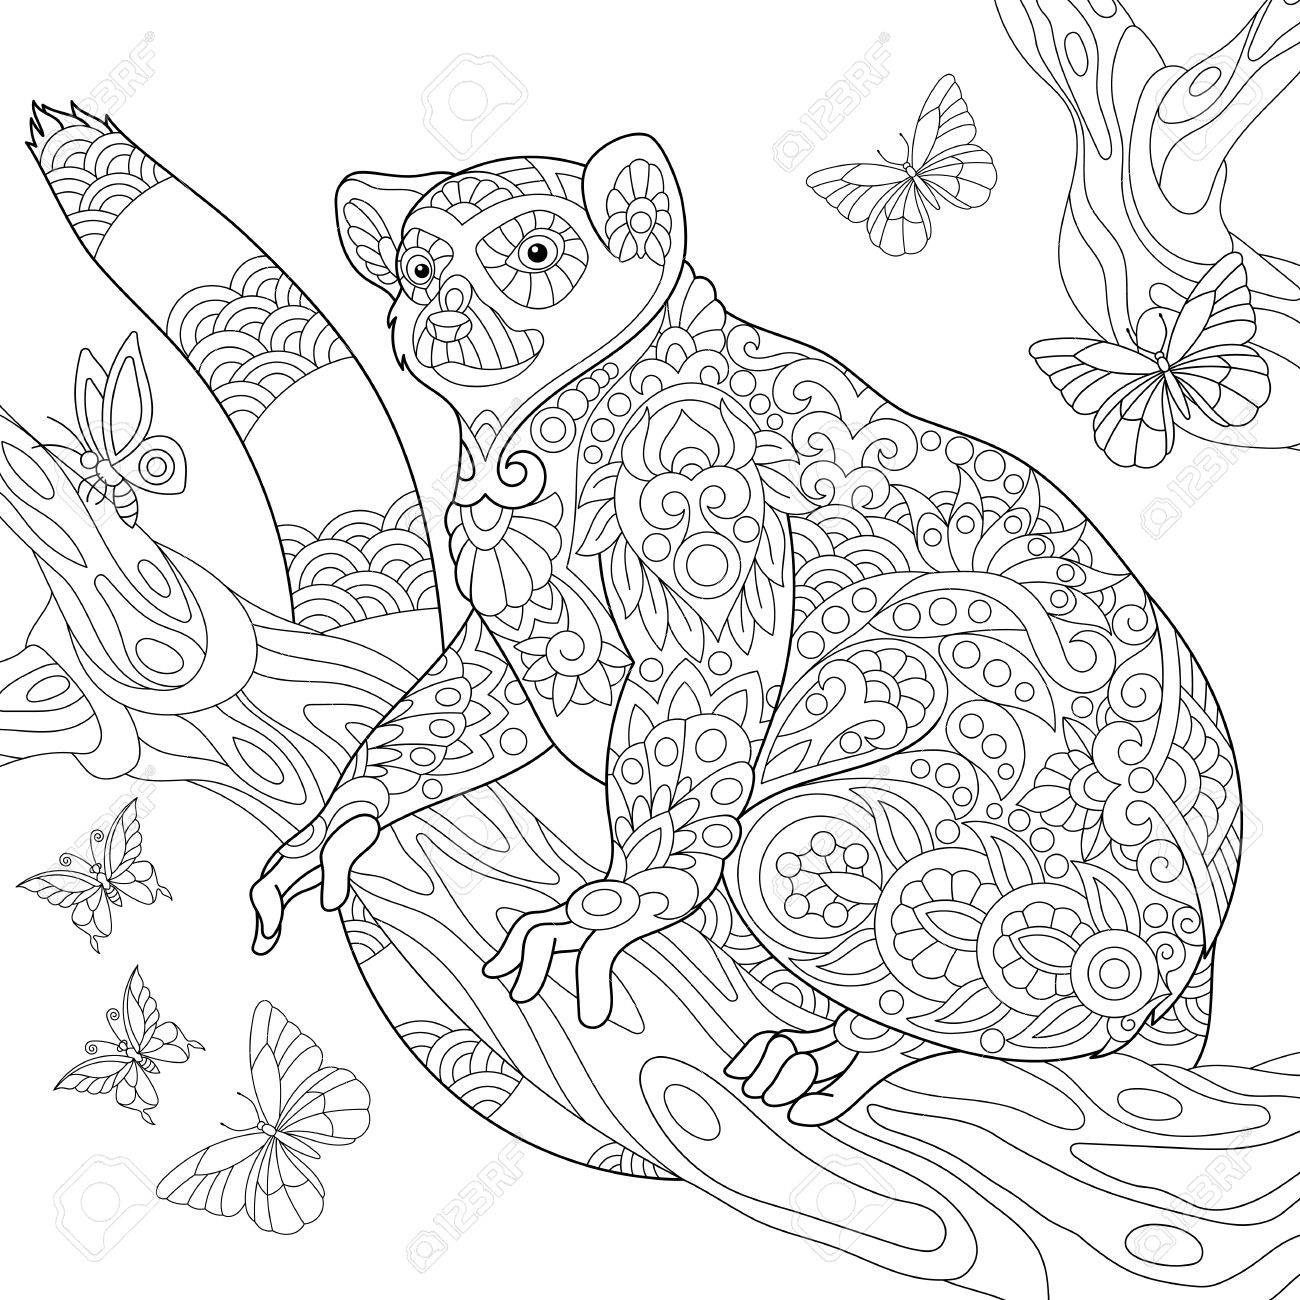 1300x1300 Coloring Page Of Madagascar Lemur Surrounded By Butterflies